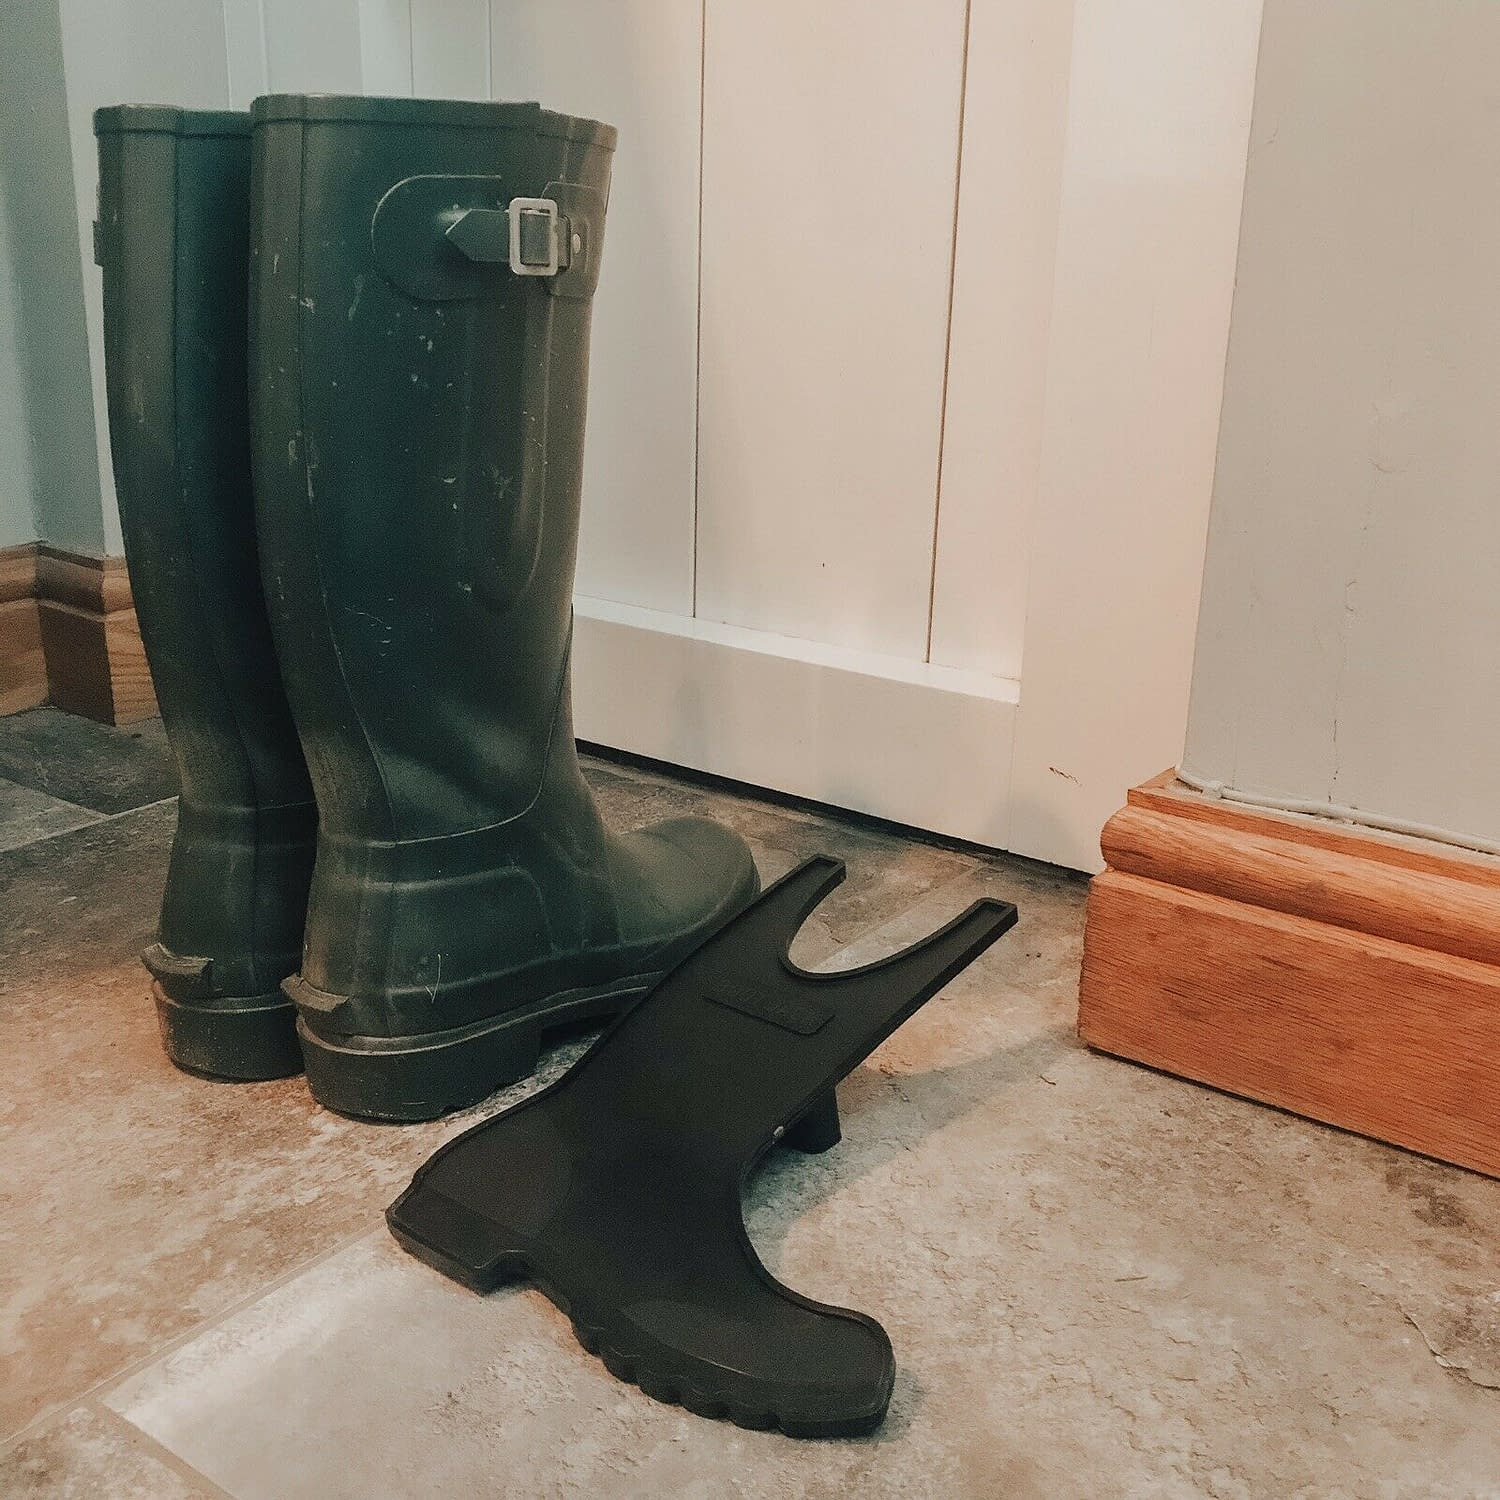 Boot Jack Welly/Walking/Riding Boot Remover Portable Remove Muddy Boots Easily | TG Engineering Plastics Limited